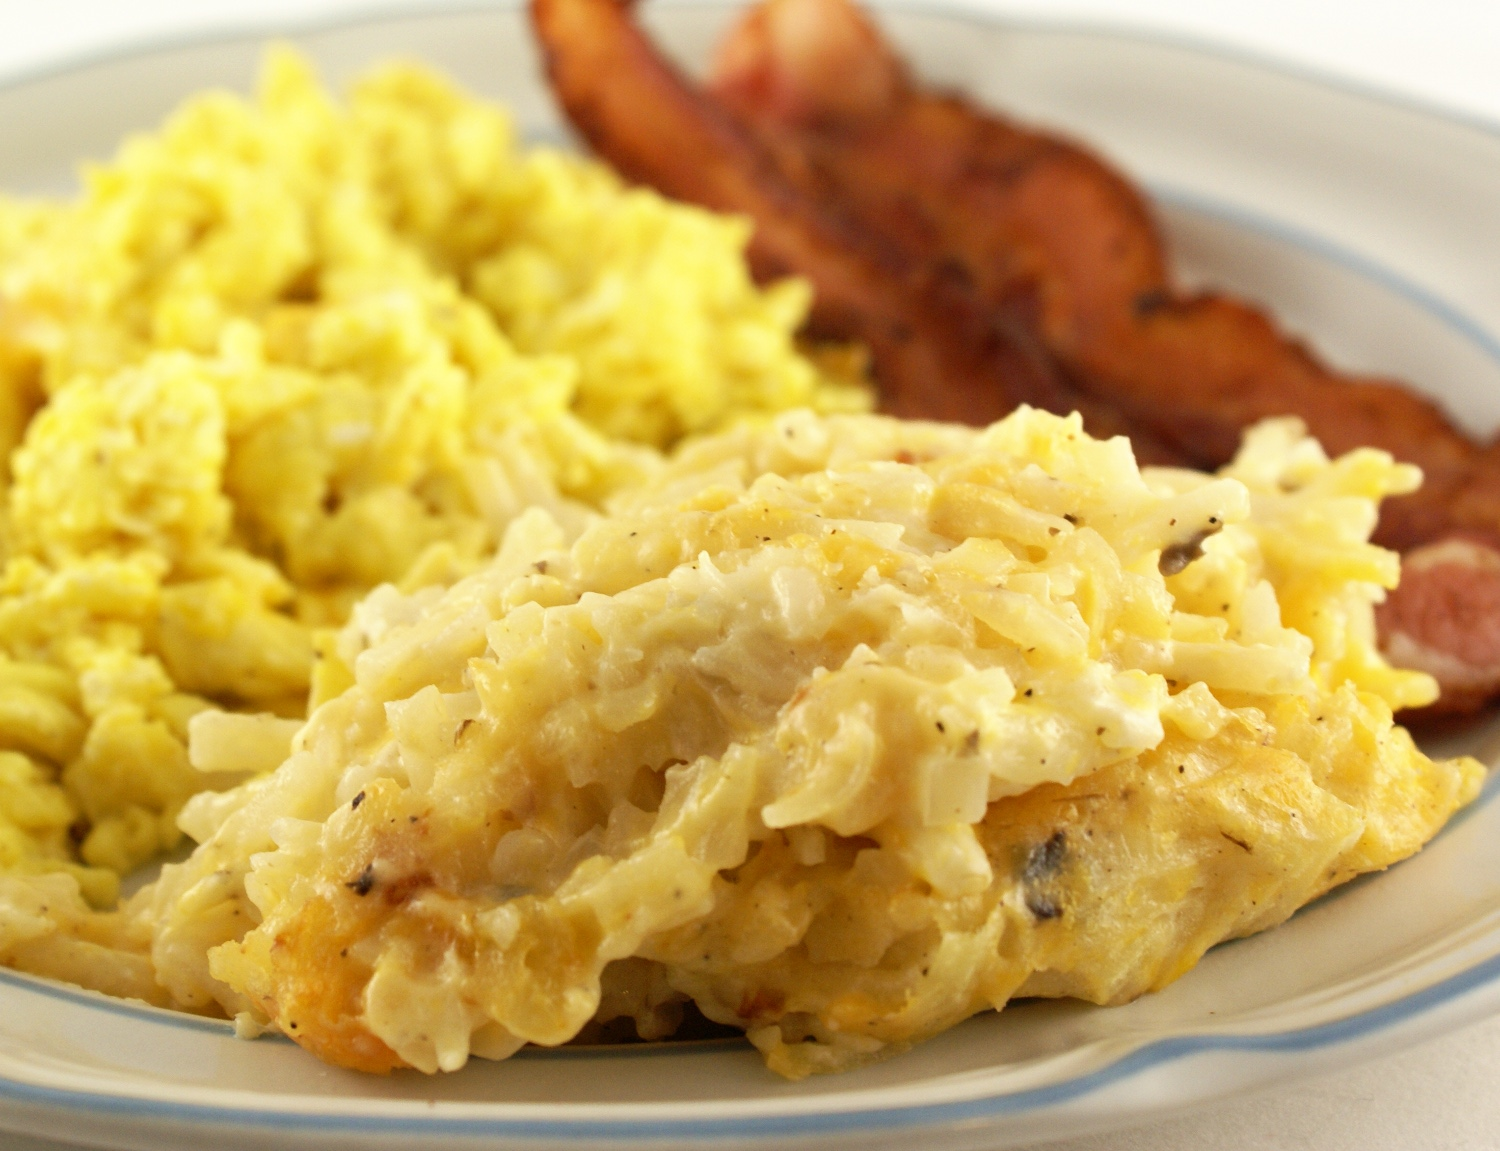 Cracker Barrel Copycat Recipes: Hash Browns